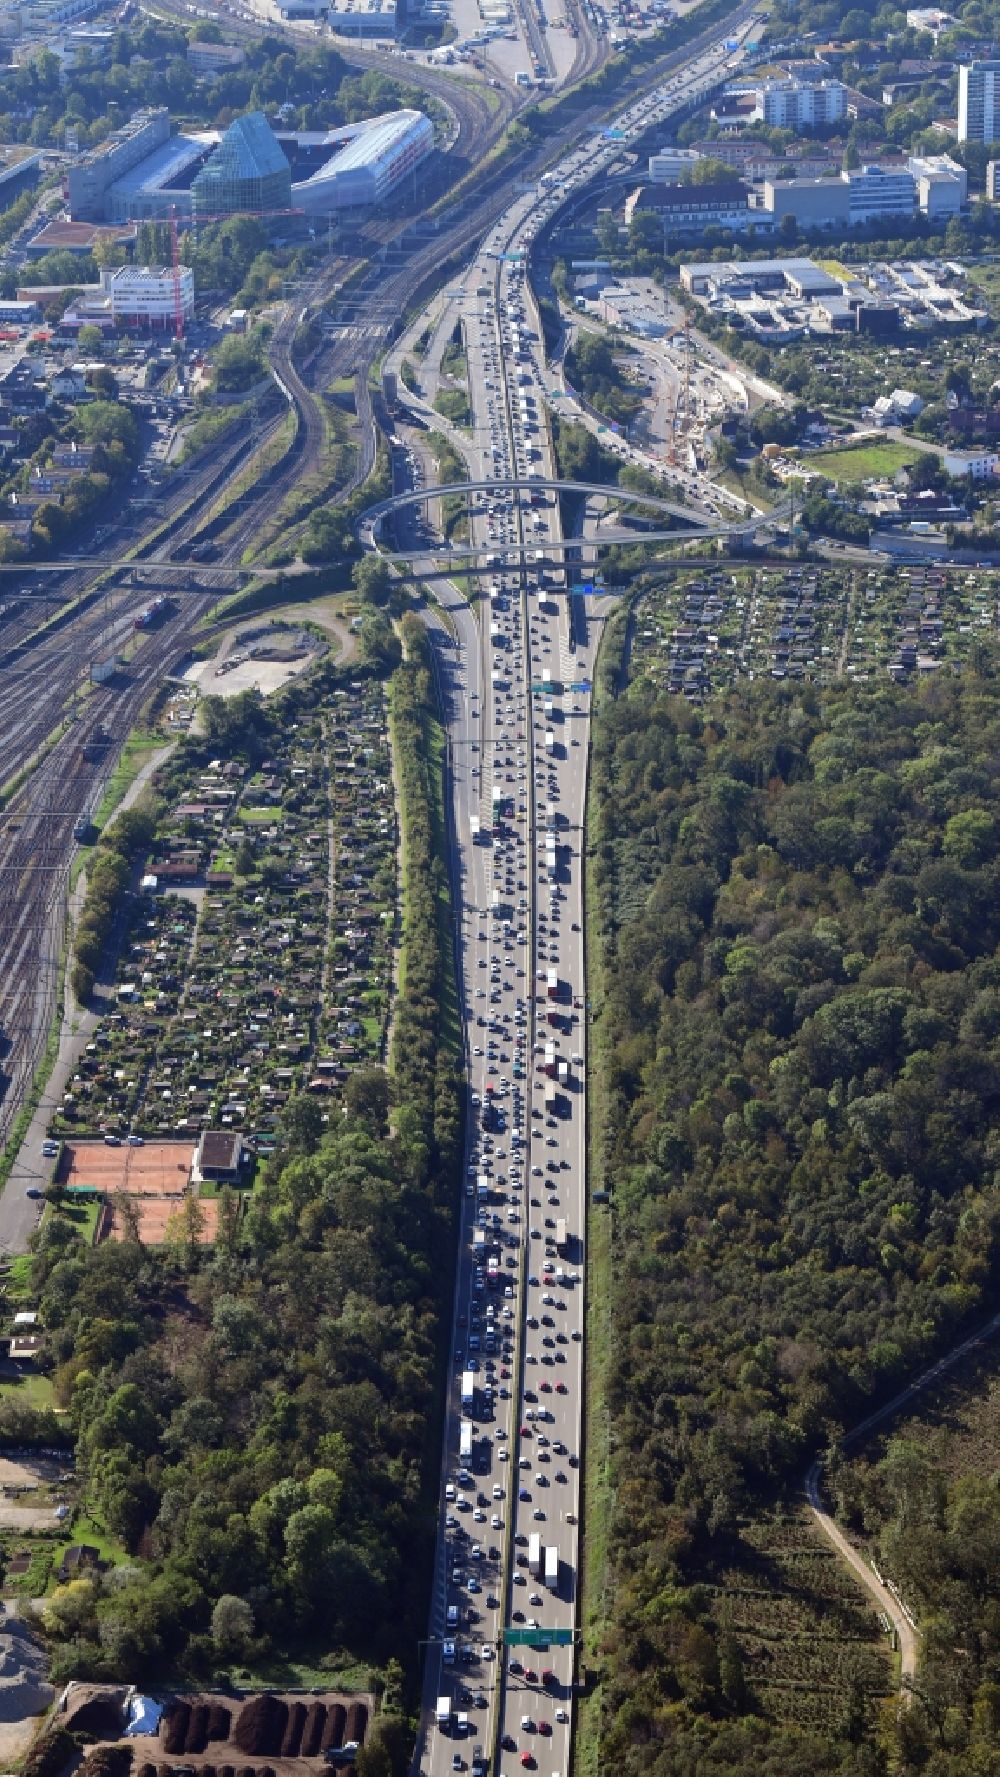 Muttenz from above - Highway congestion along the route of the lanes of the swiss motorway A2 / A3Autobahn in Muttenz in the canton Basel-Landschaft, Switzerland.